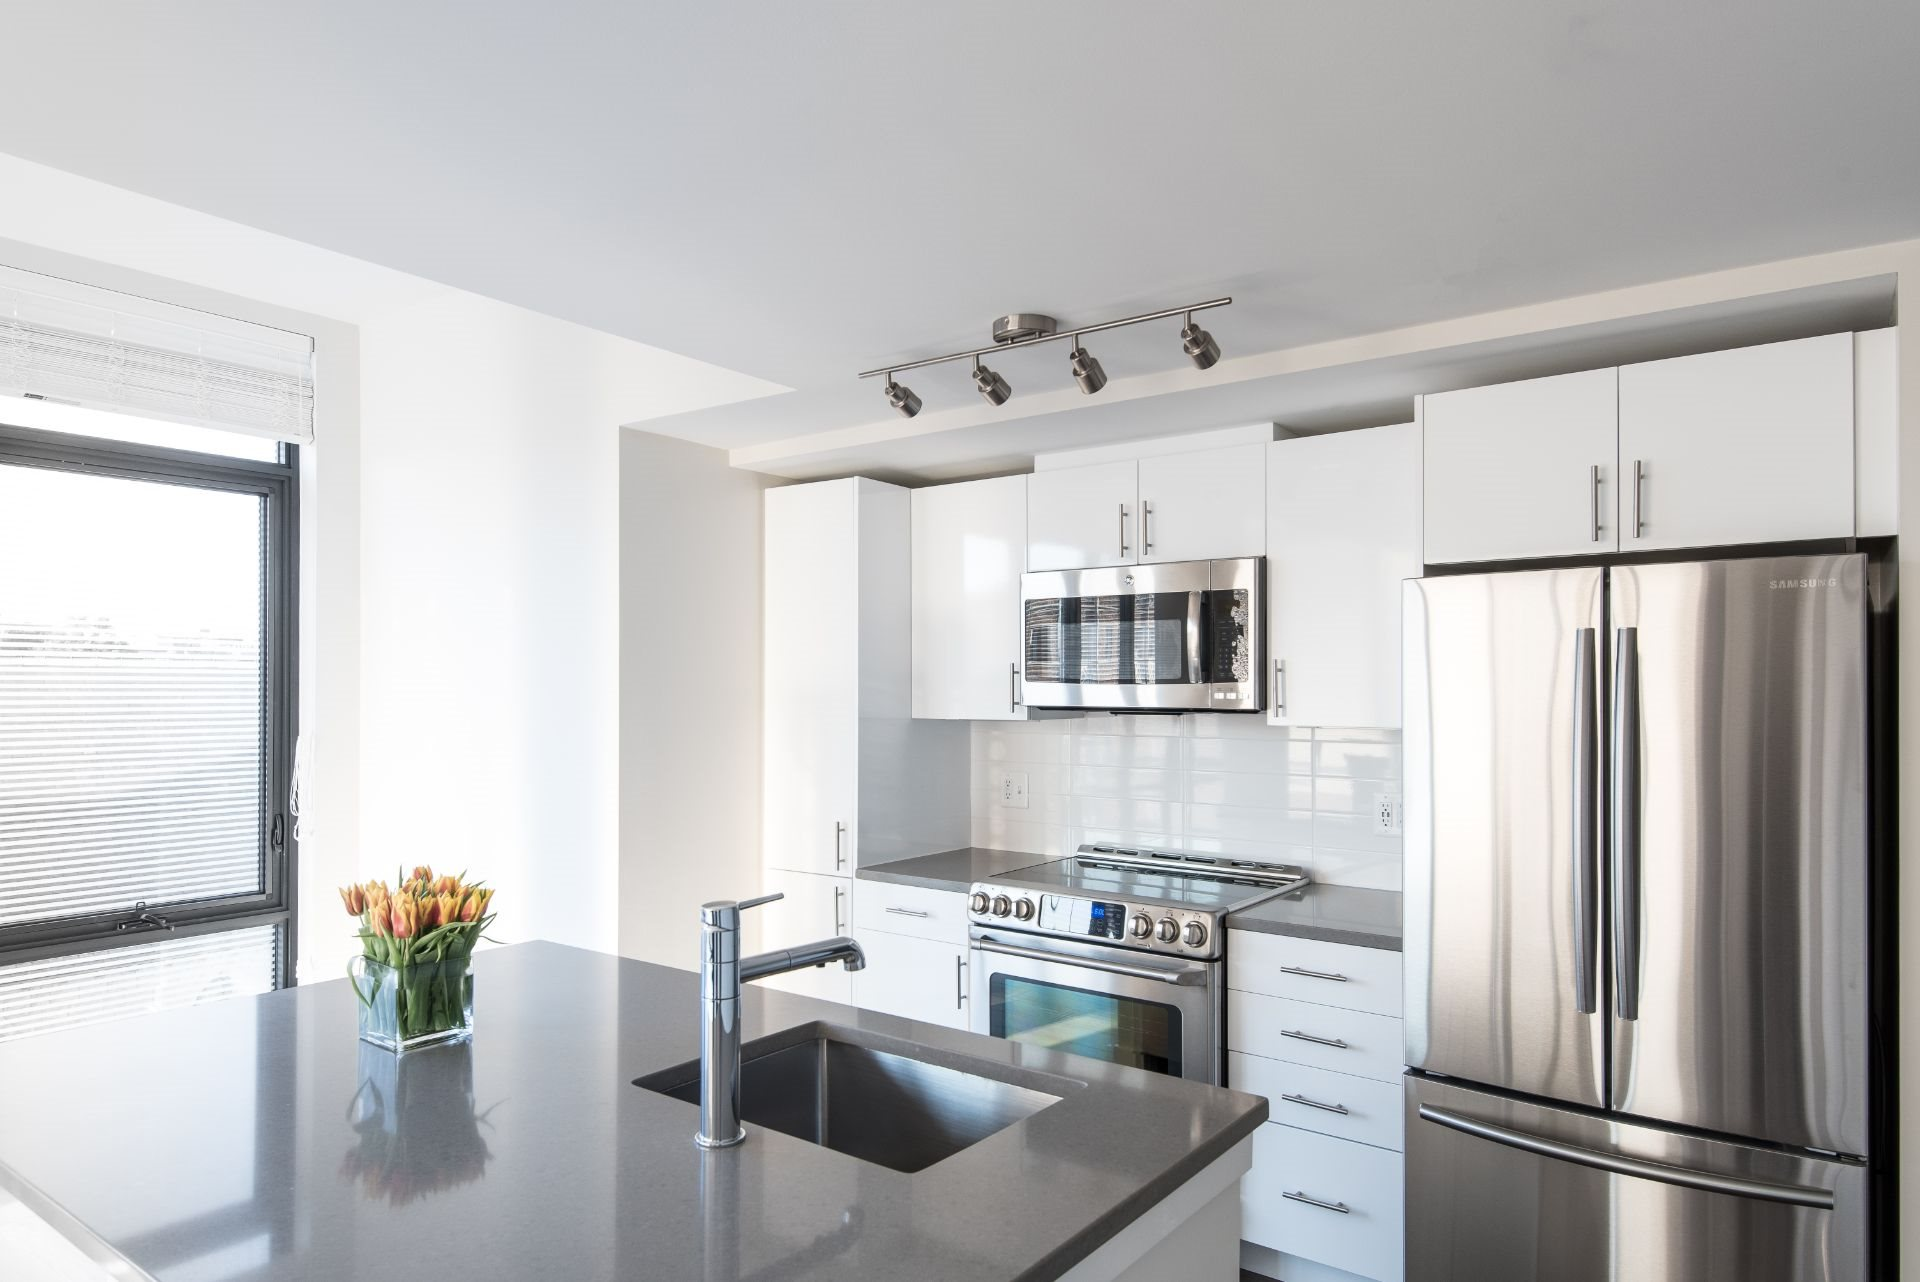 Brand New Luxury Studio, 1 and 2 Bedroom Apartments in DC with Chefs Kitchen, Stainless Appliances and Quartz Counters-Berkshire 15 Apartments